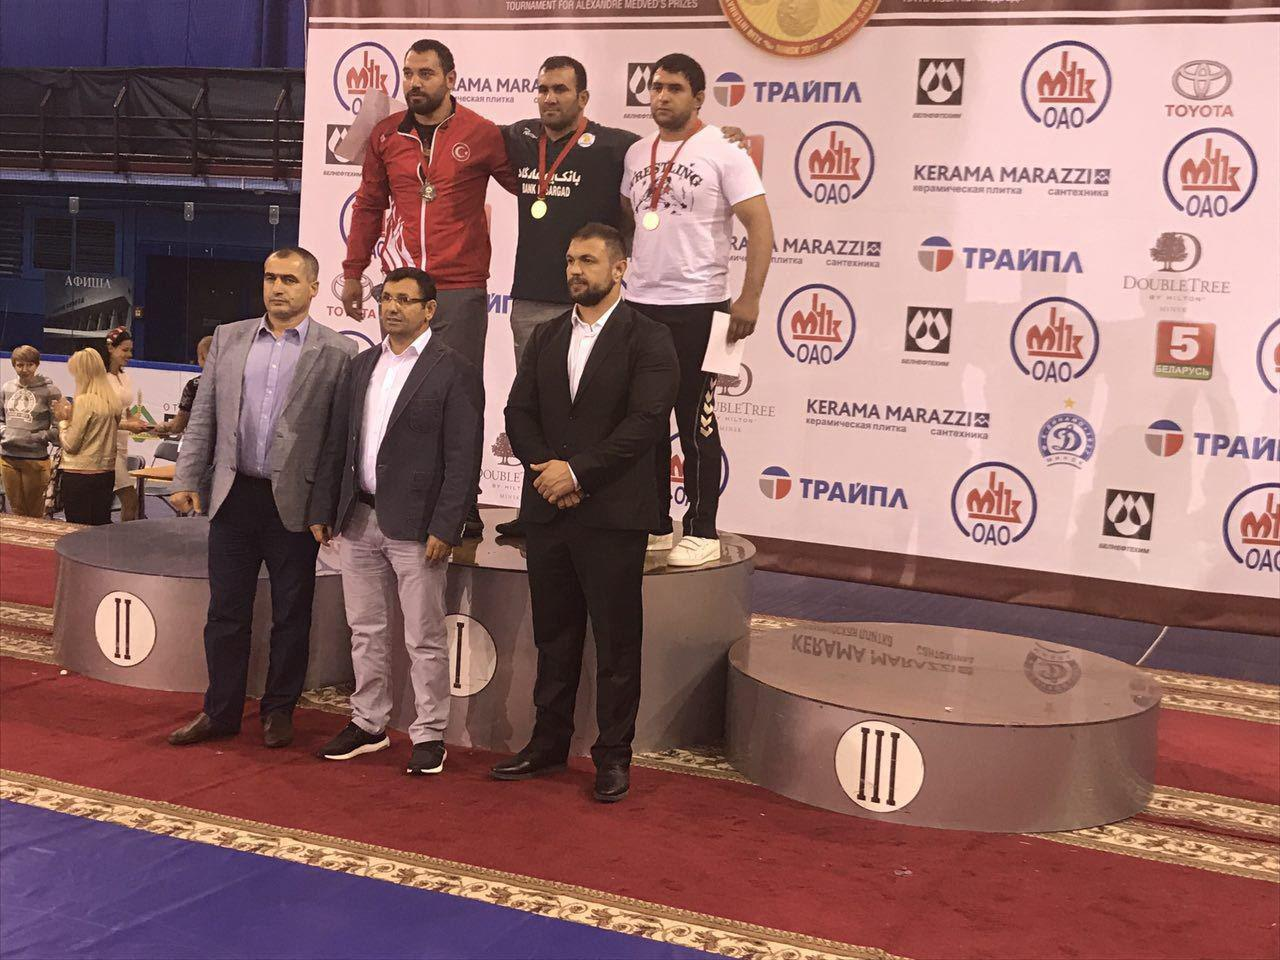 Iran snatches 2 golds in Belarus Medved 2017 wrestling competitions